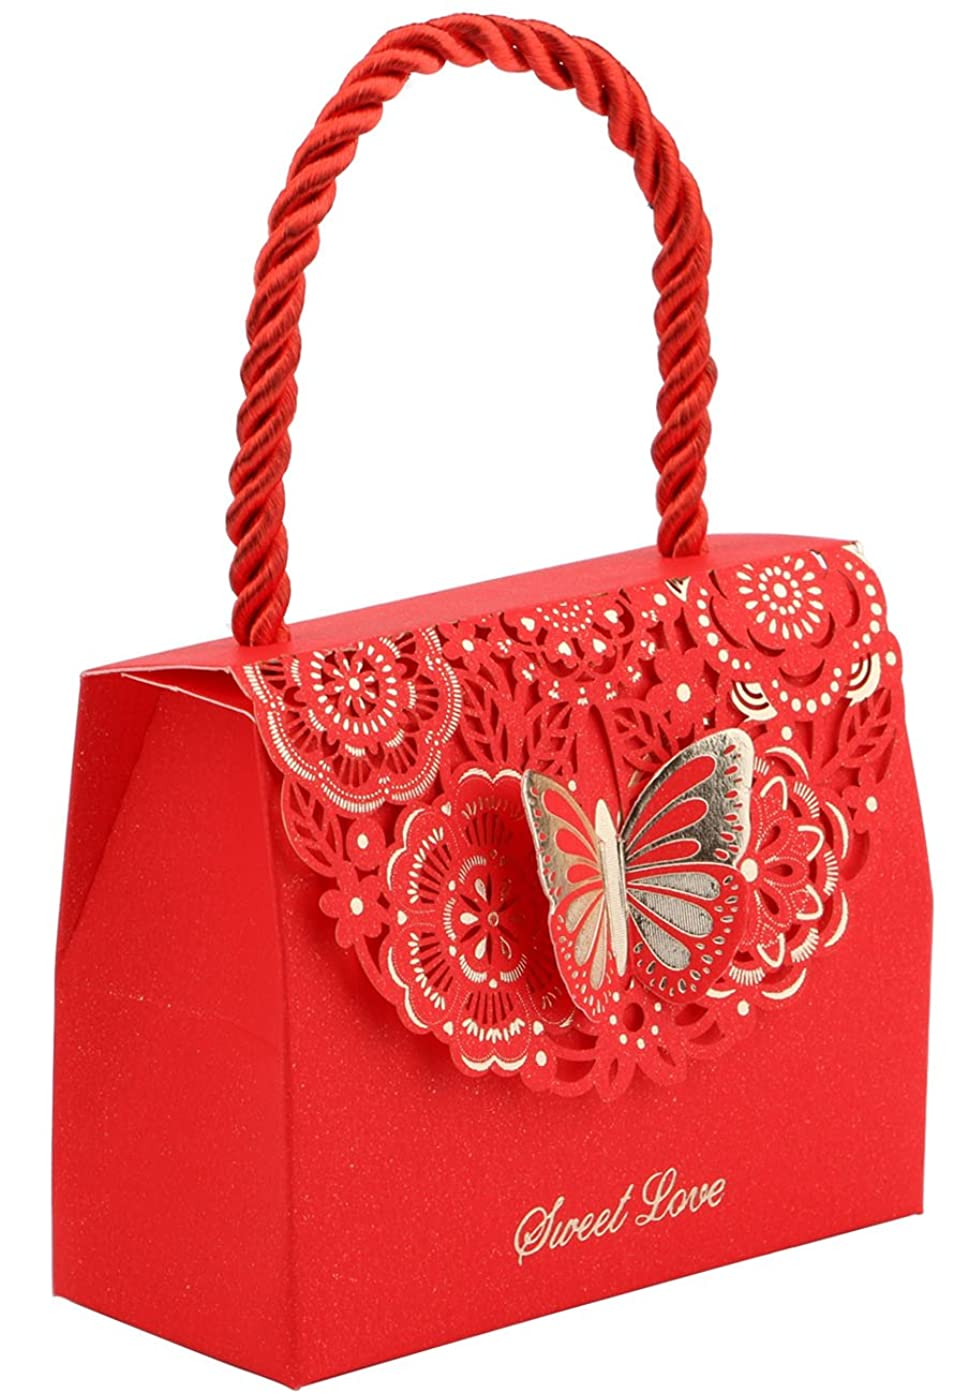 20pcs Butterfly Decorative Boxes Paper Tote Gift Bags with Handle, DriewWedding Wedding Flower Favor Boxes for Anniversary, Birthday Parties, Baby Shower, Bridal Showers - Red, 3.5